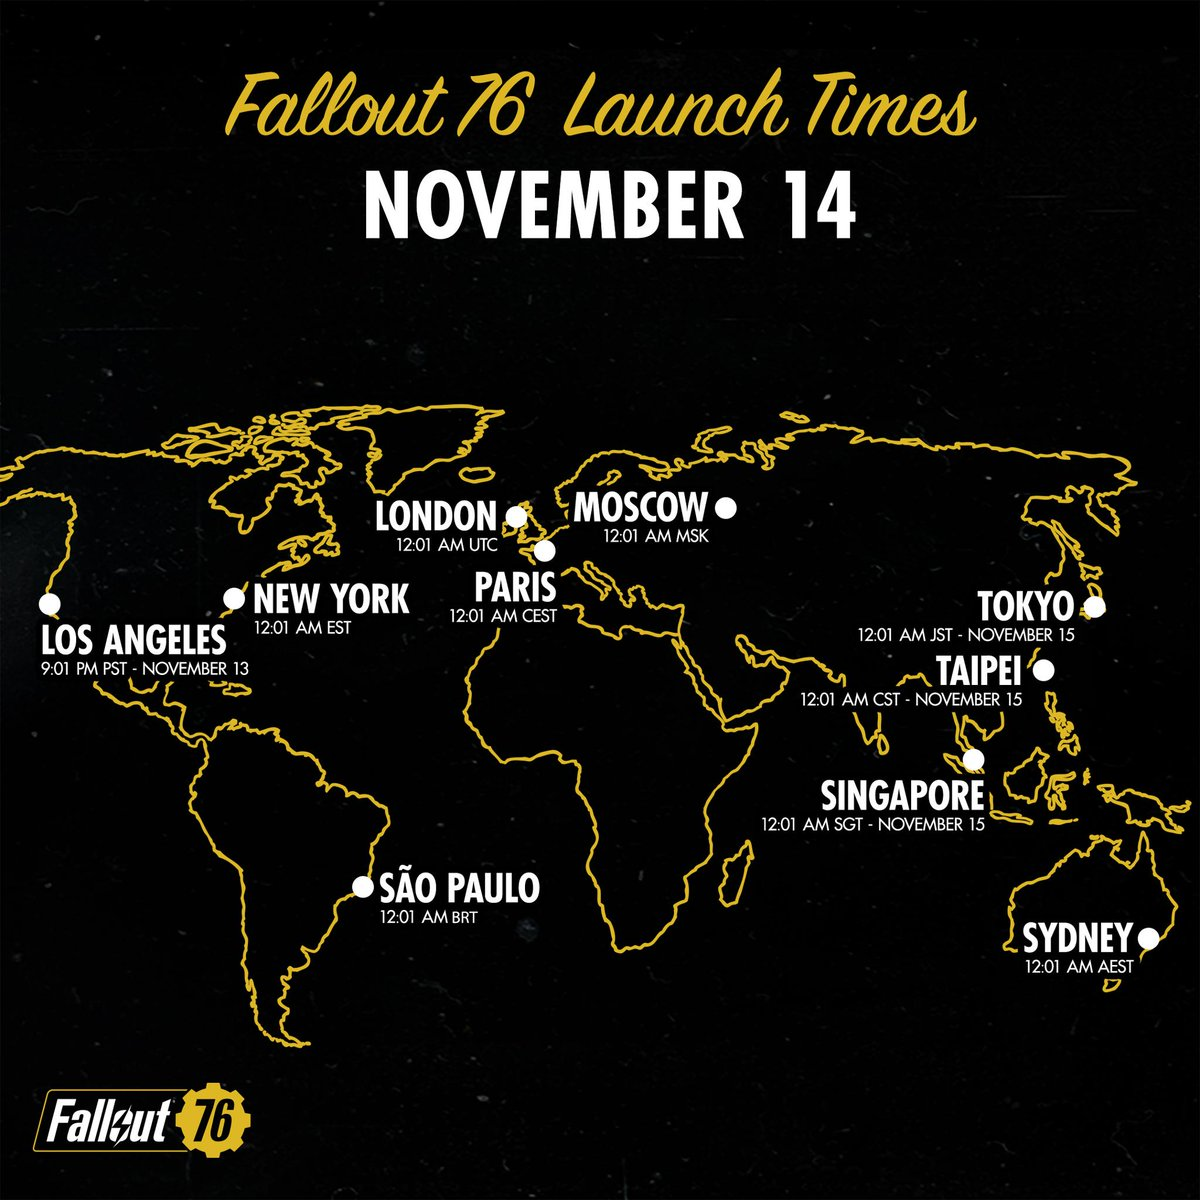 Fallout on Twitter: